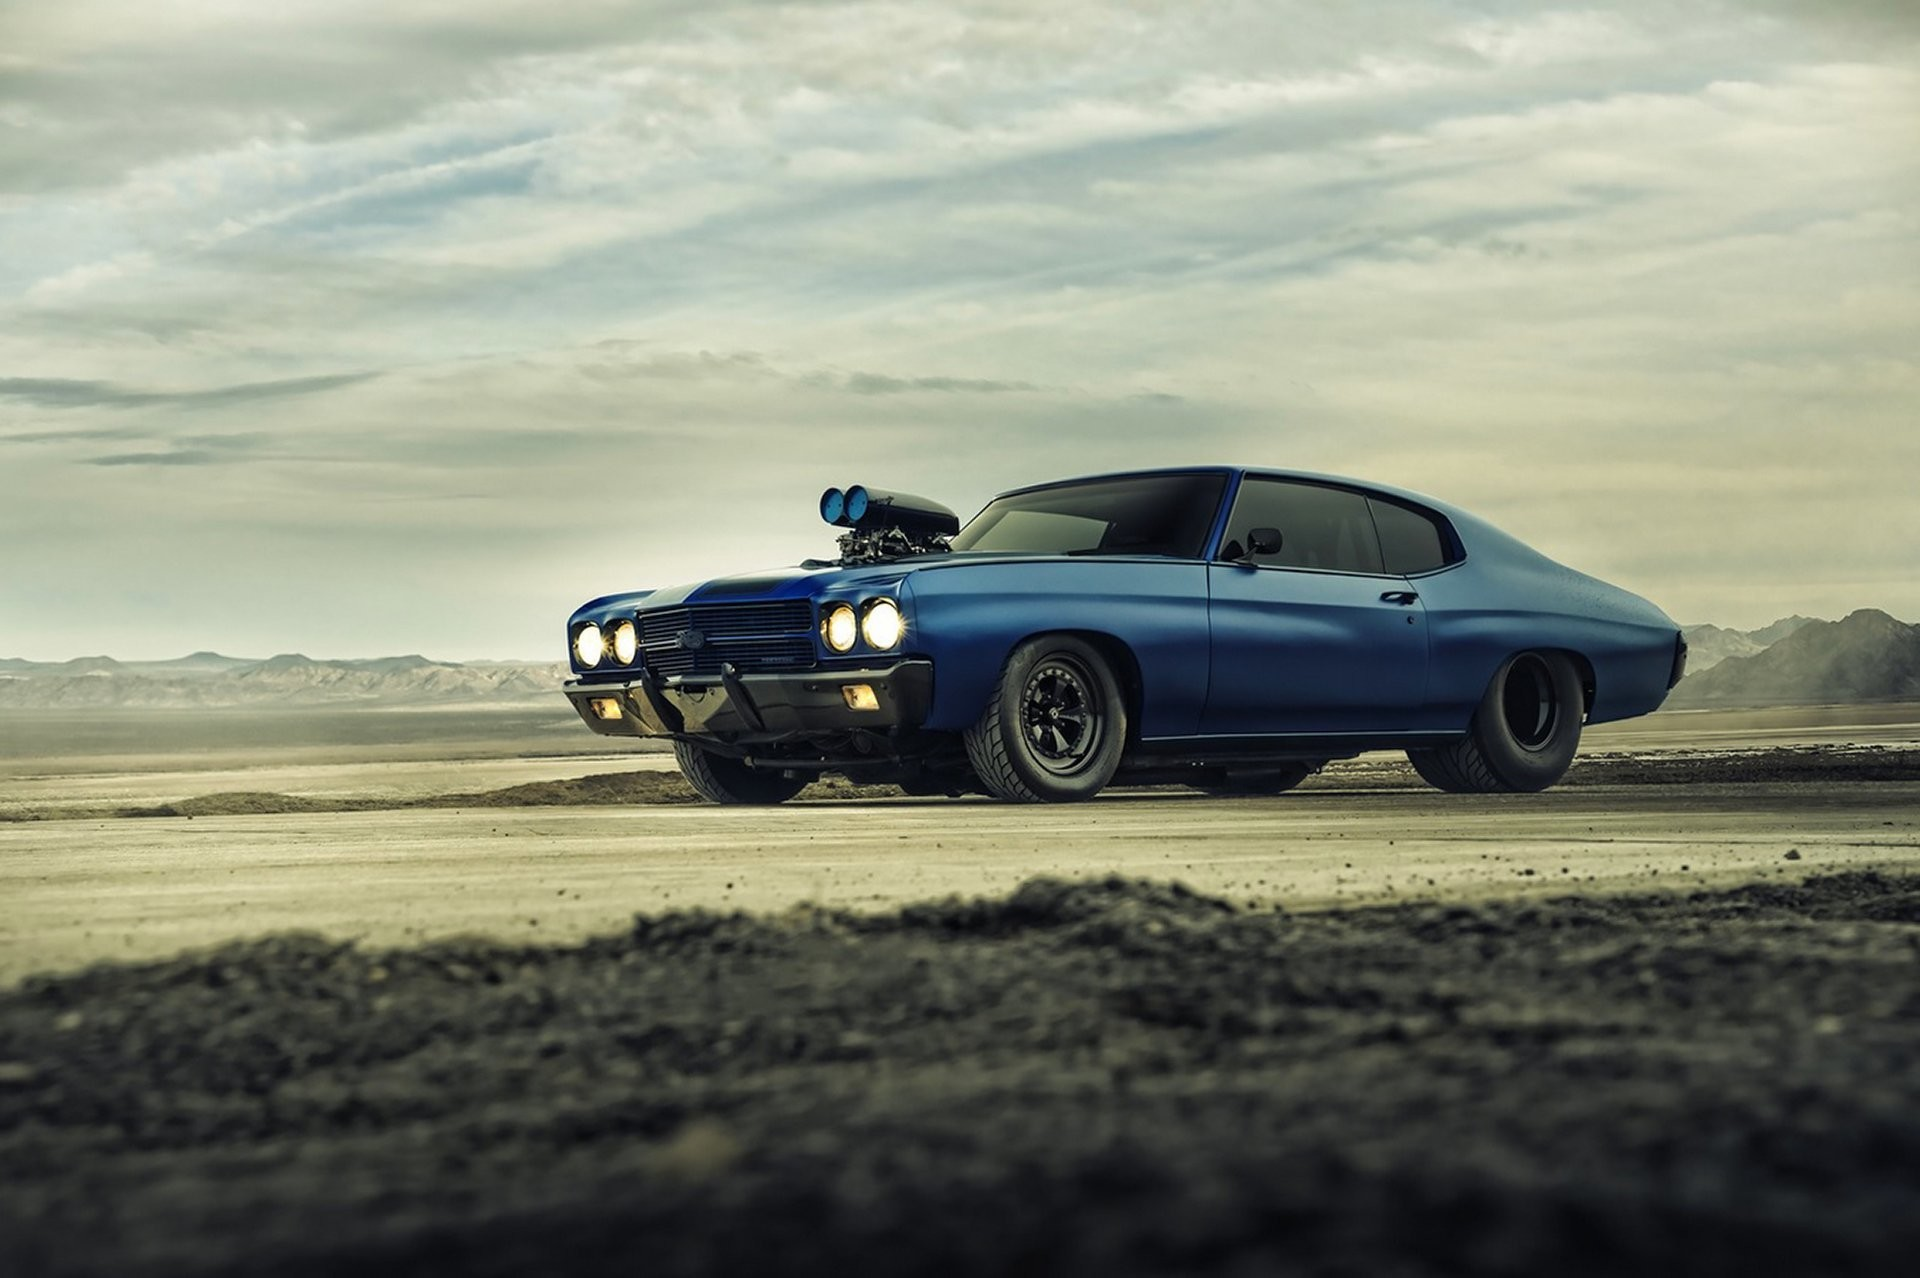 1970 Chevelle Ss Wallpaper (58+ images)  1970 Chevelle S...